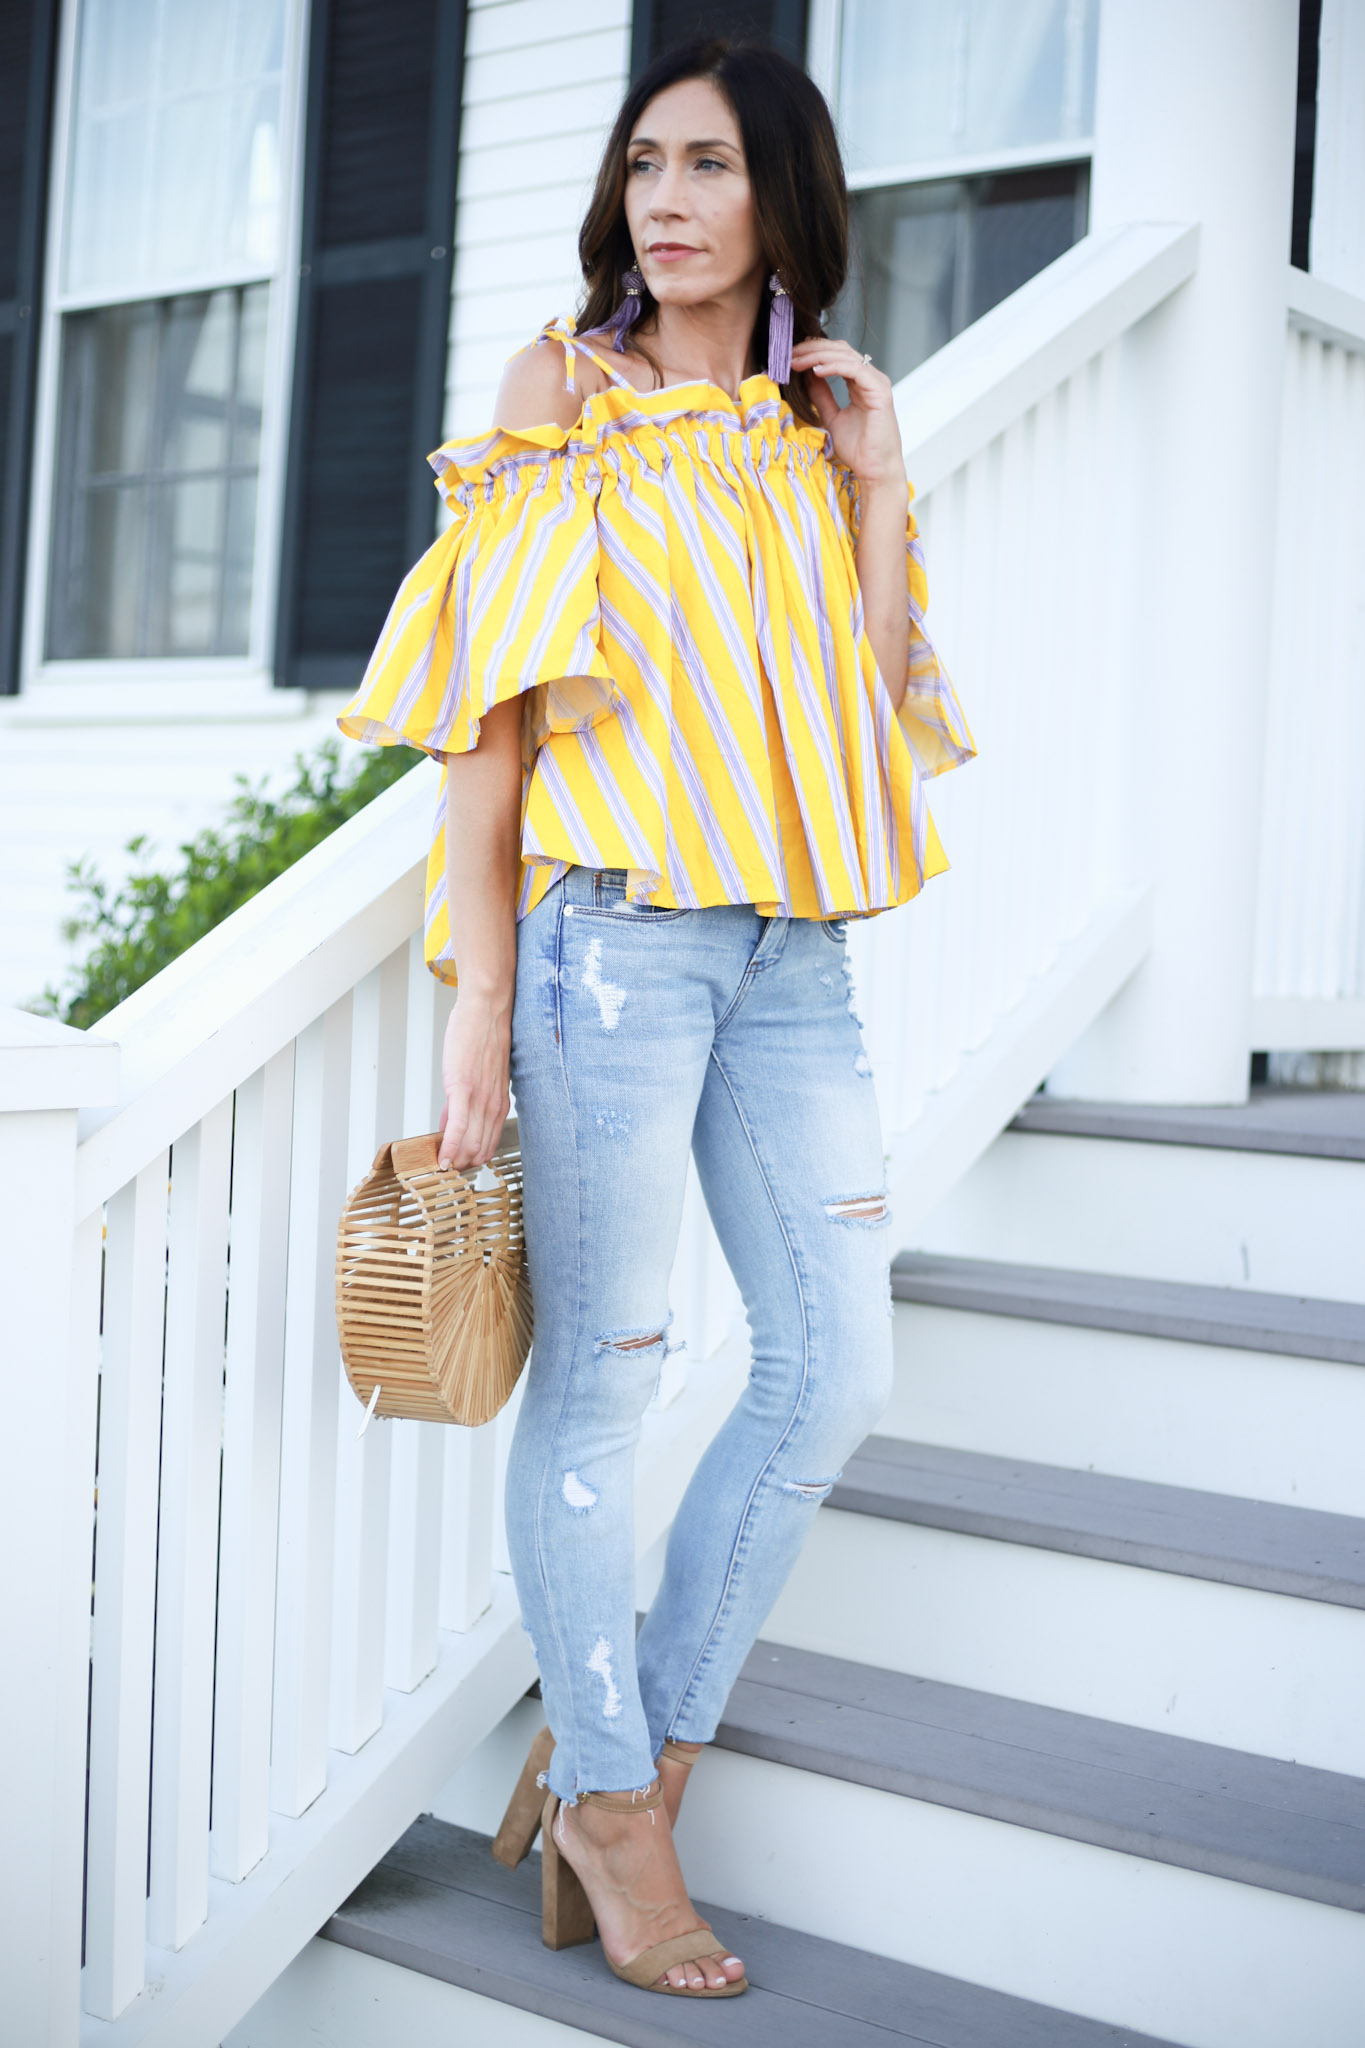 Using liketoknow.it and the cutest off the shoulder top. How To Use Liketoknow It by Boston fashion blogger Living Life Pretty